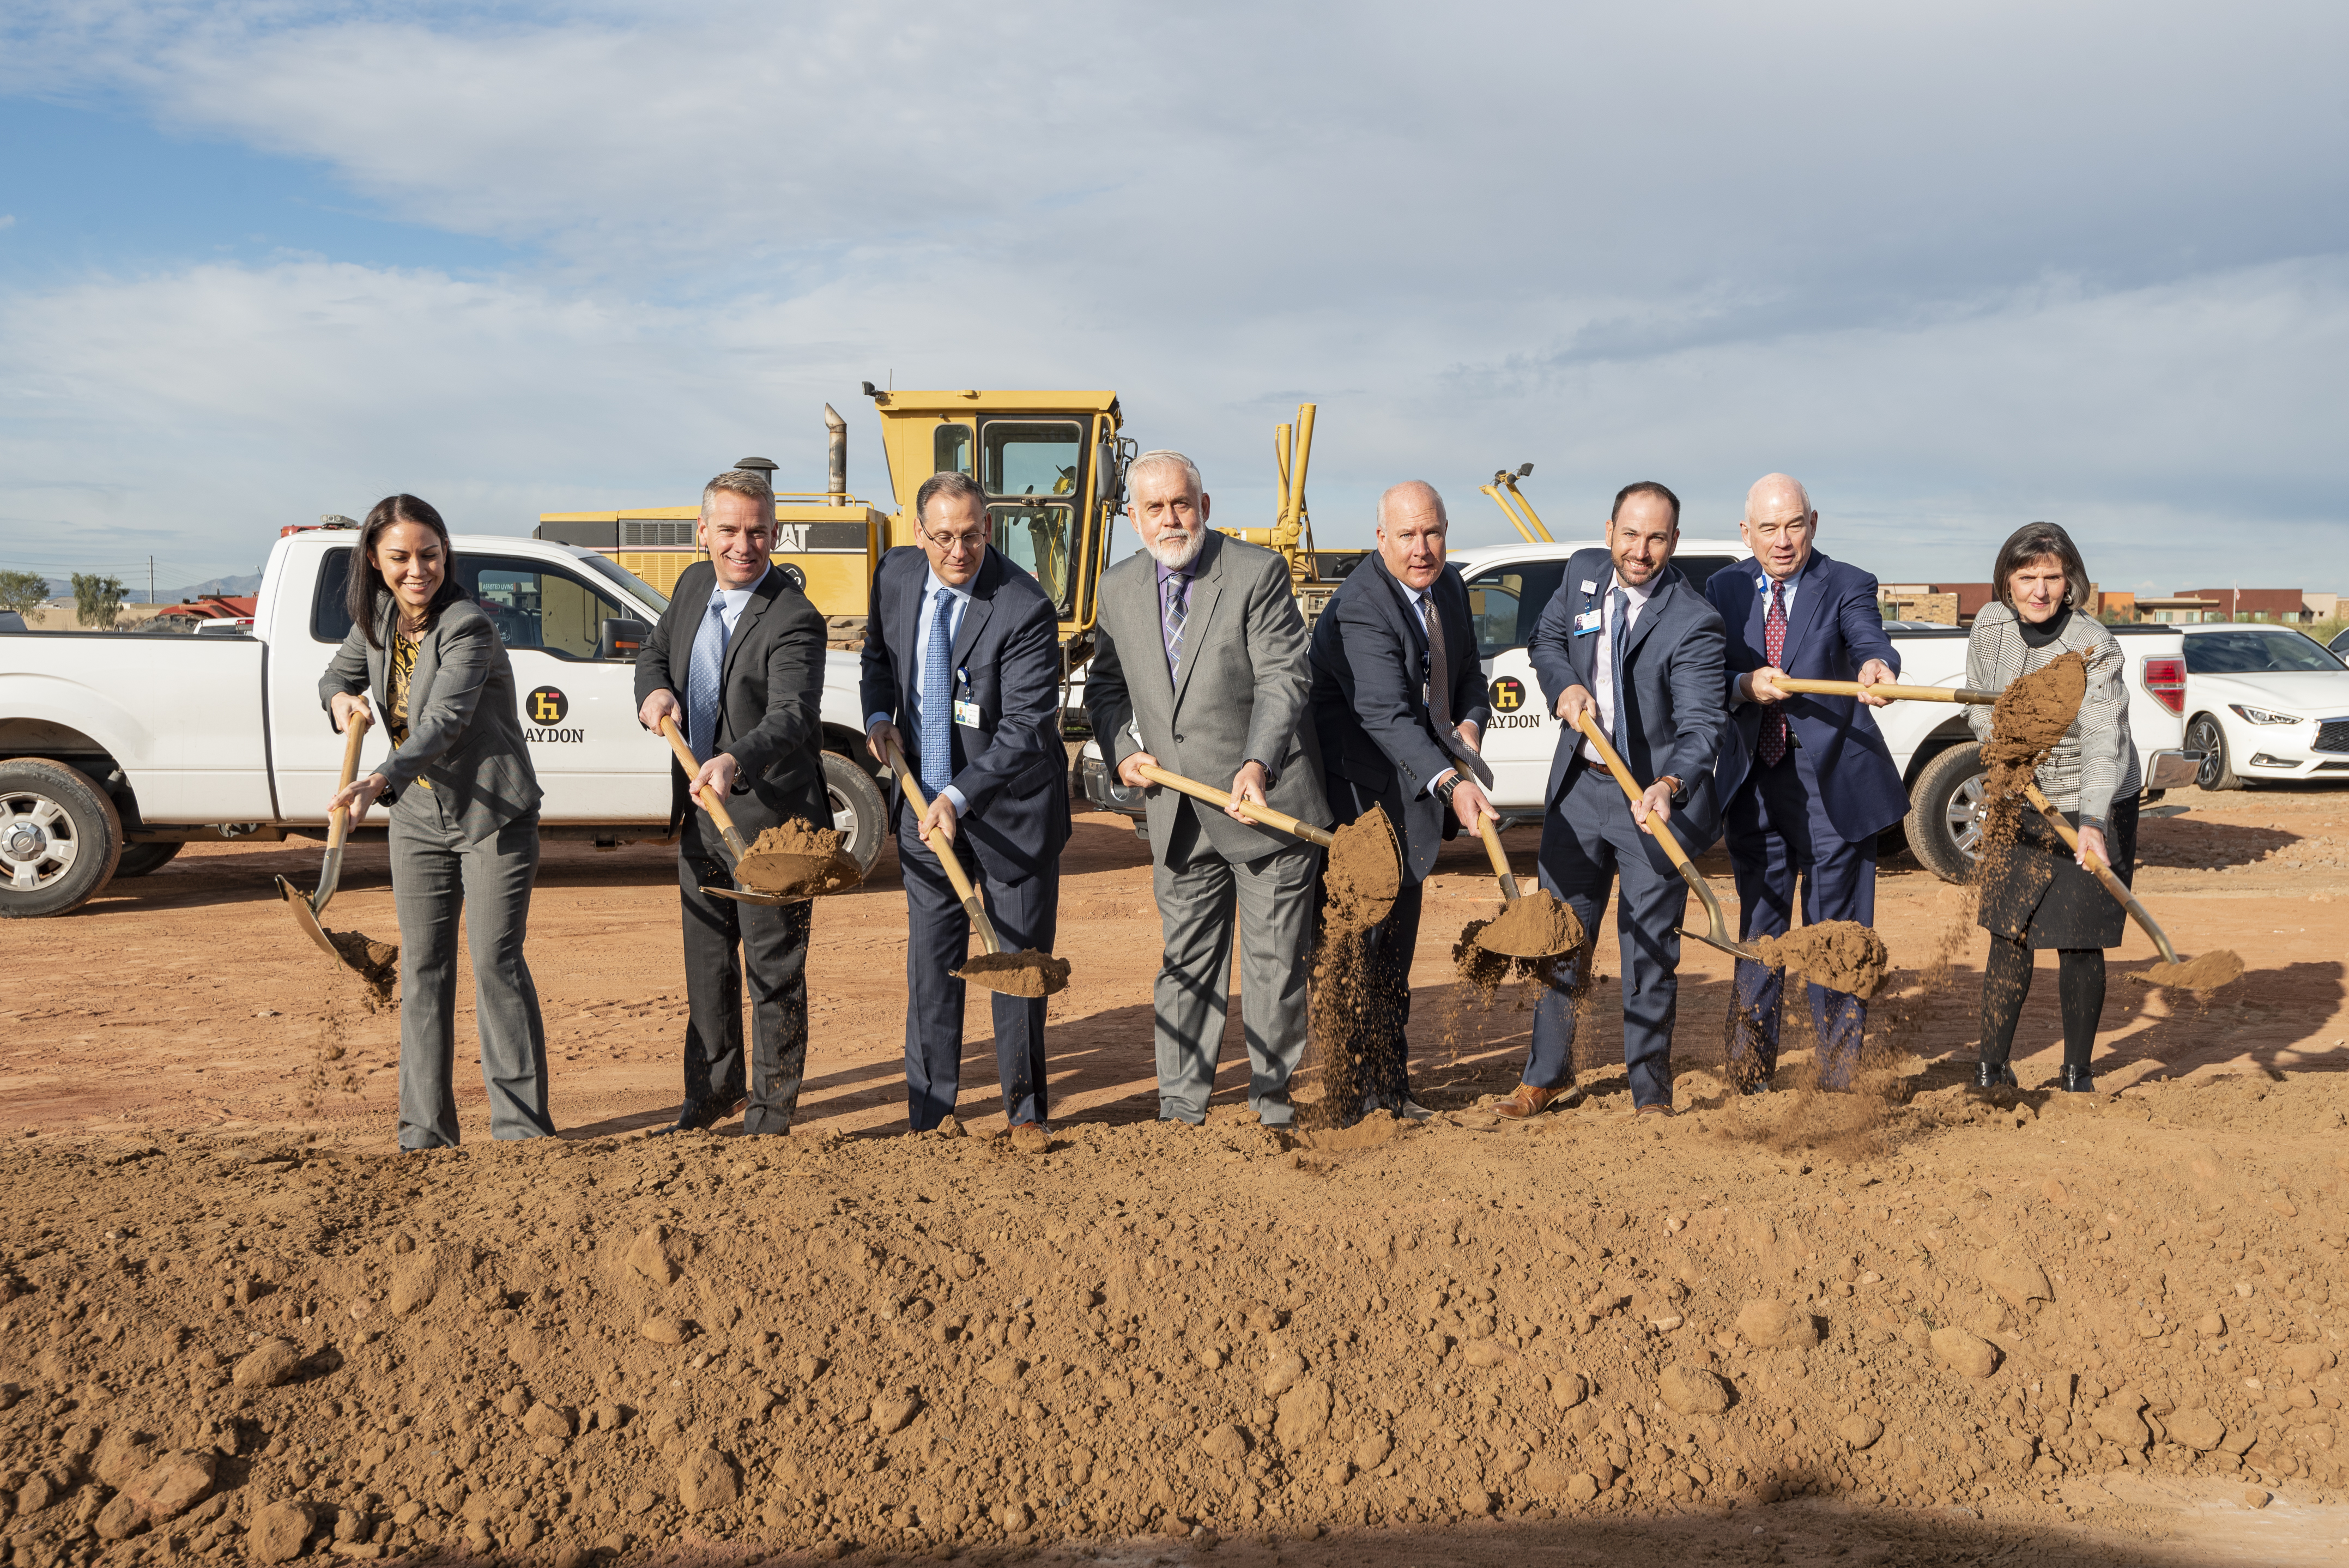 NexCore Group Breaks Ground on Banner Health Center, a Multispecialty MOB in Glendale, Ariz.